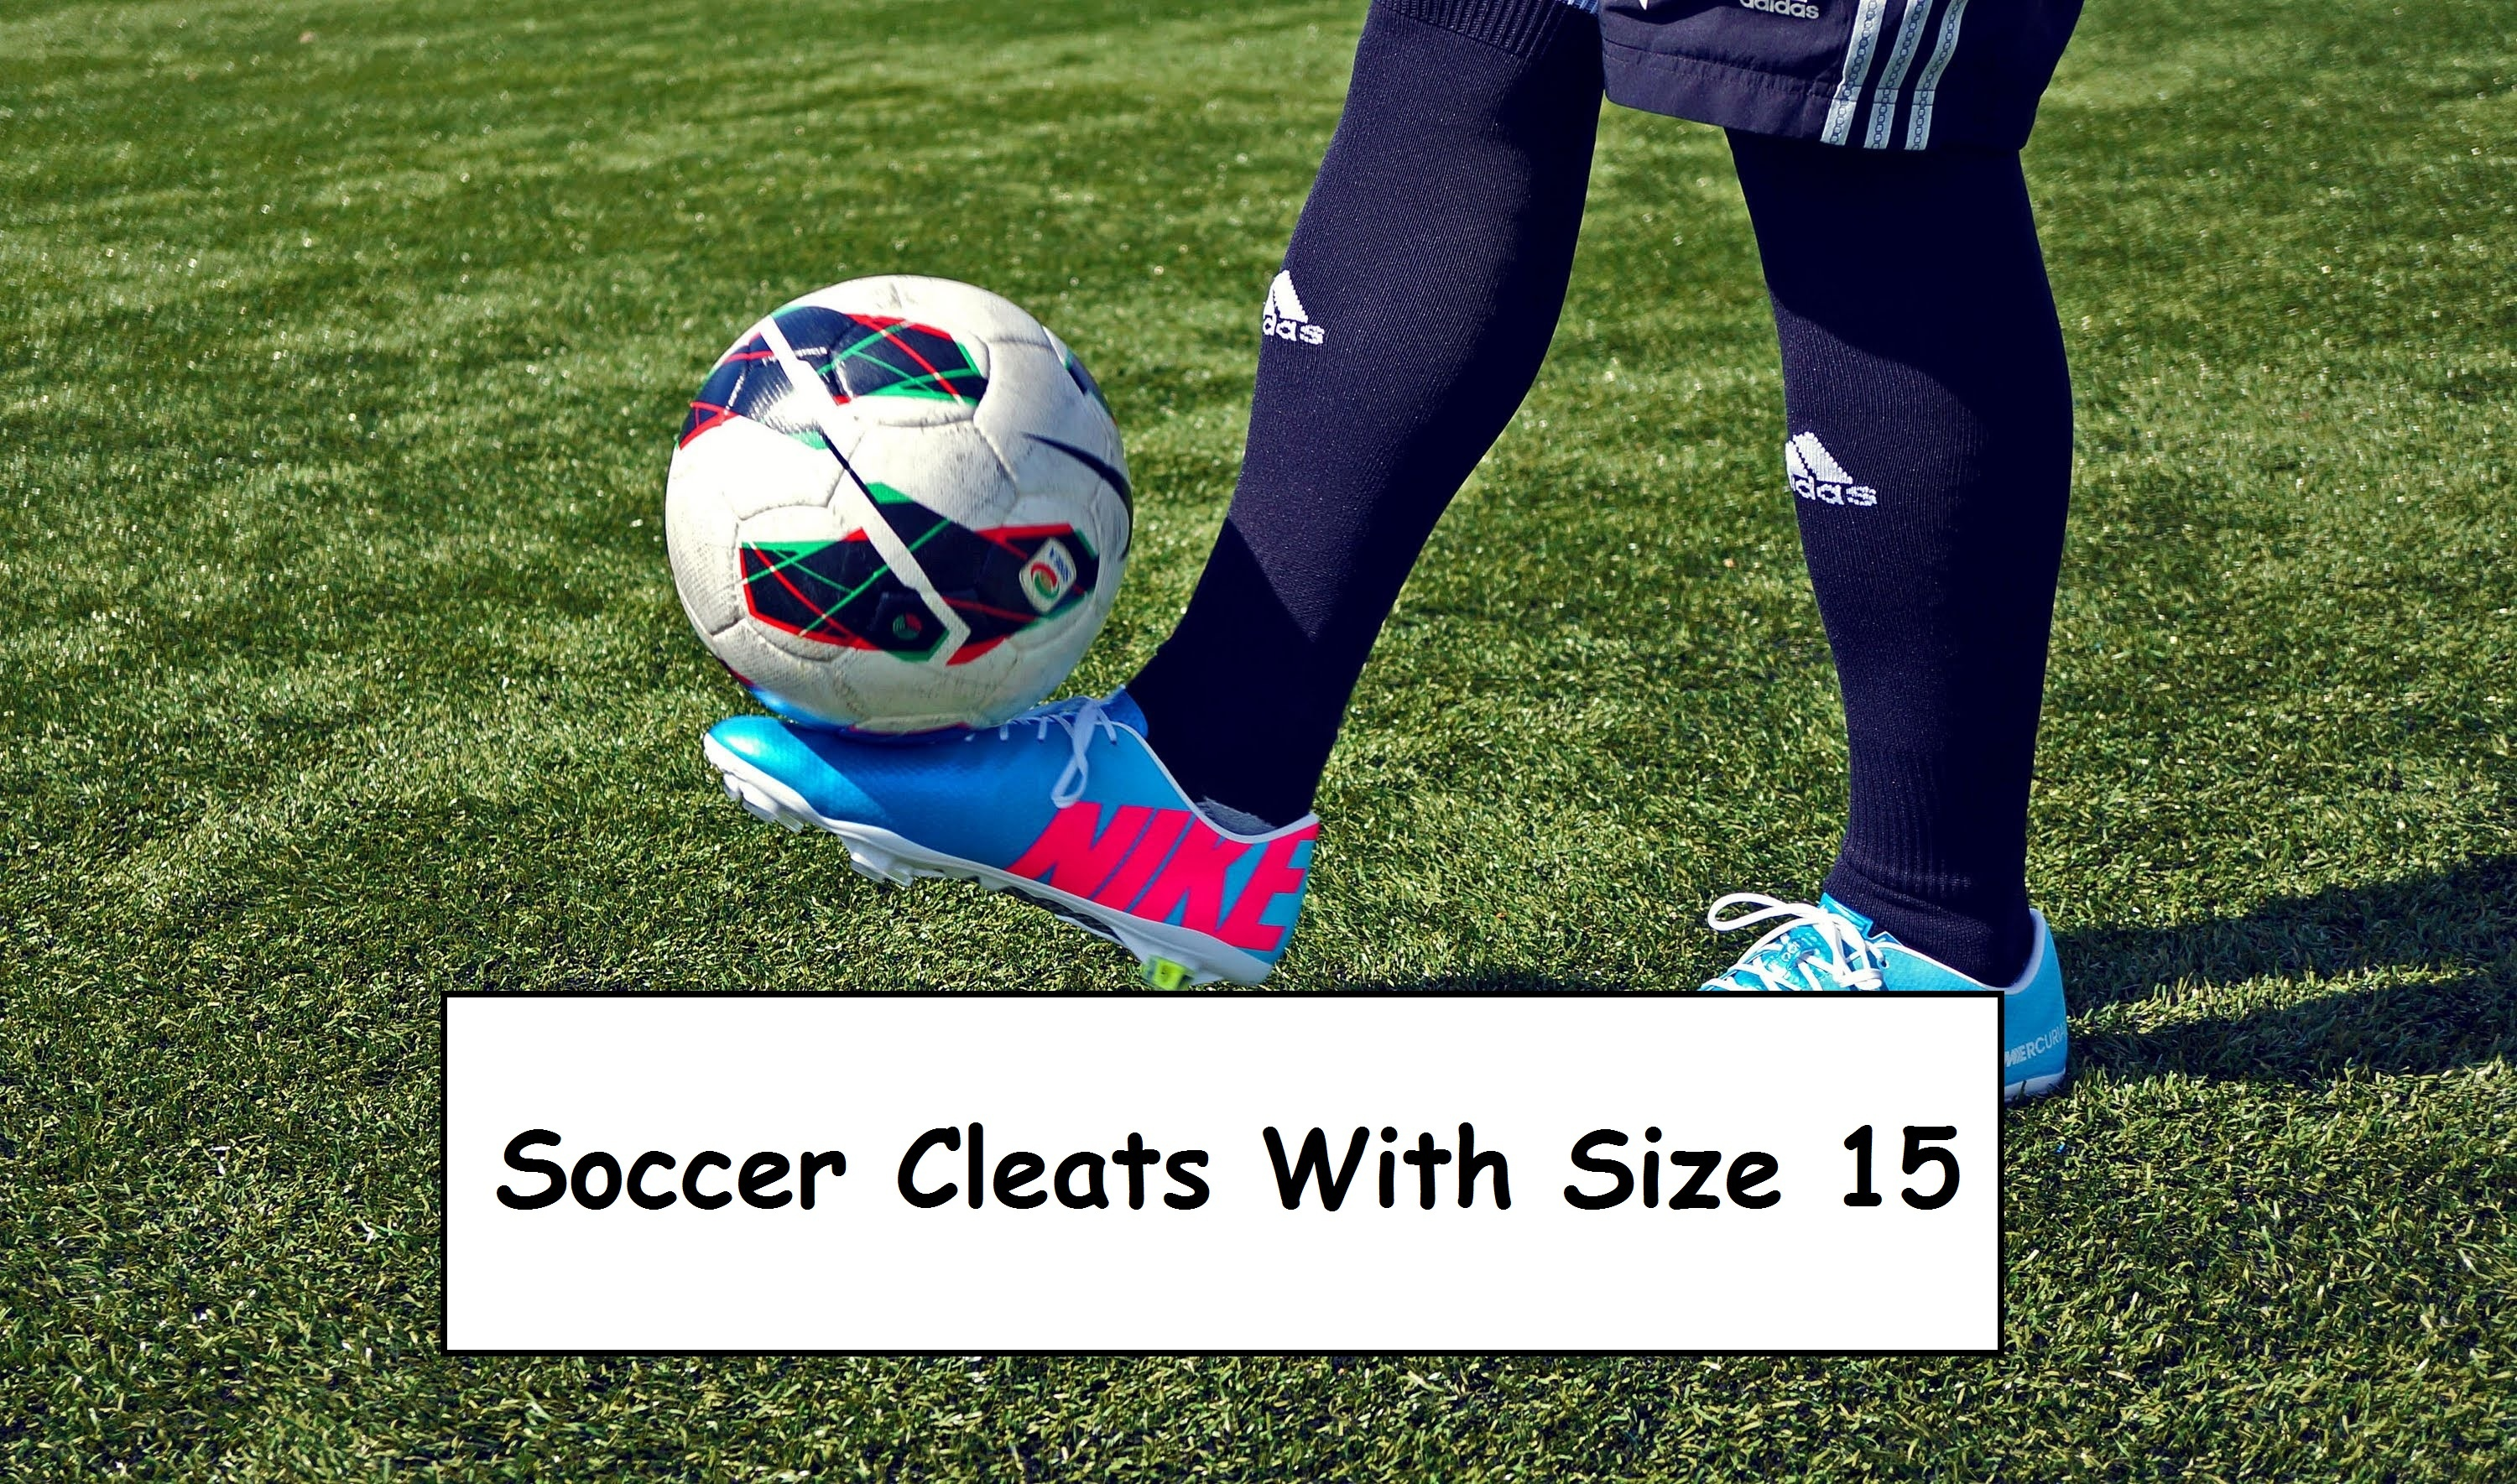 size 15 soccer cleats